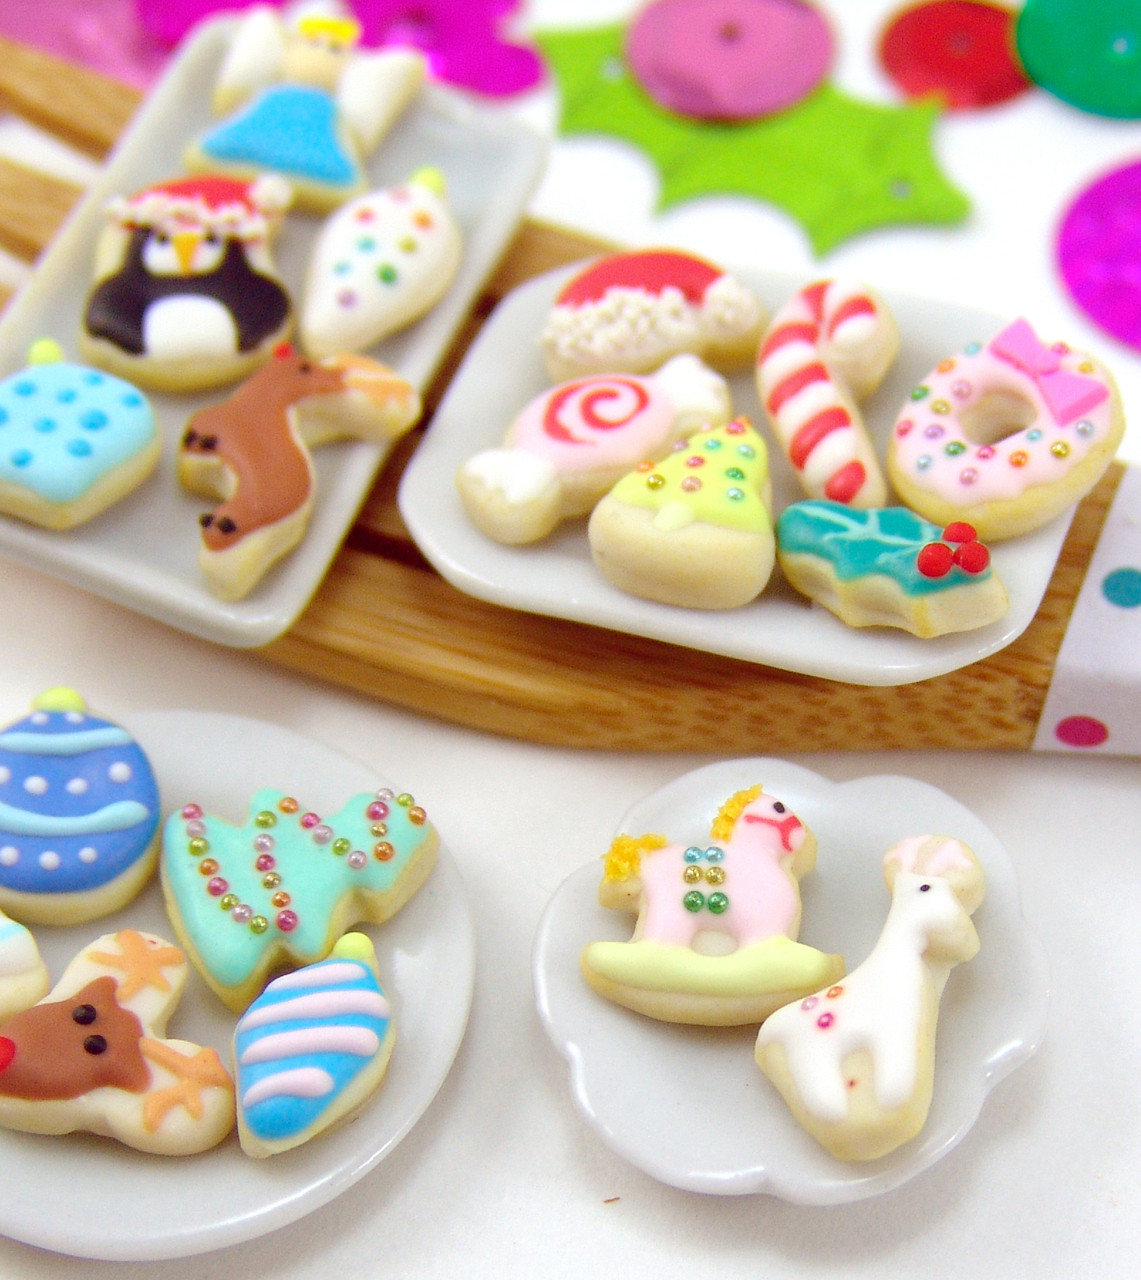 Polymer Clay Mold Flexible Silicone Dollhouse Cookie Mold Rocking Horse For 1 12 Scale And Food Jewelry Projects